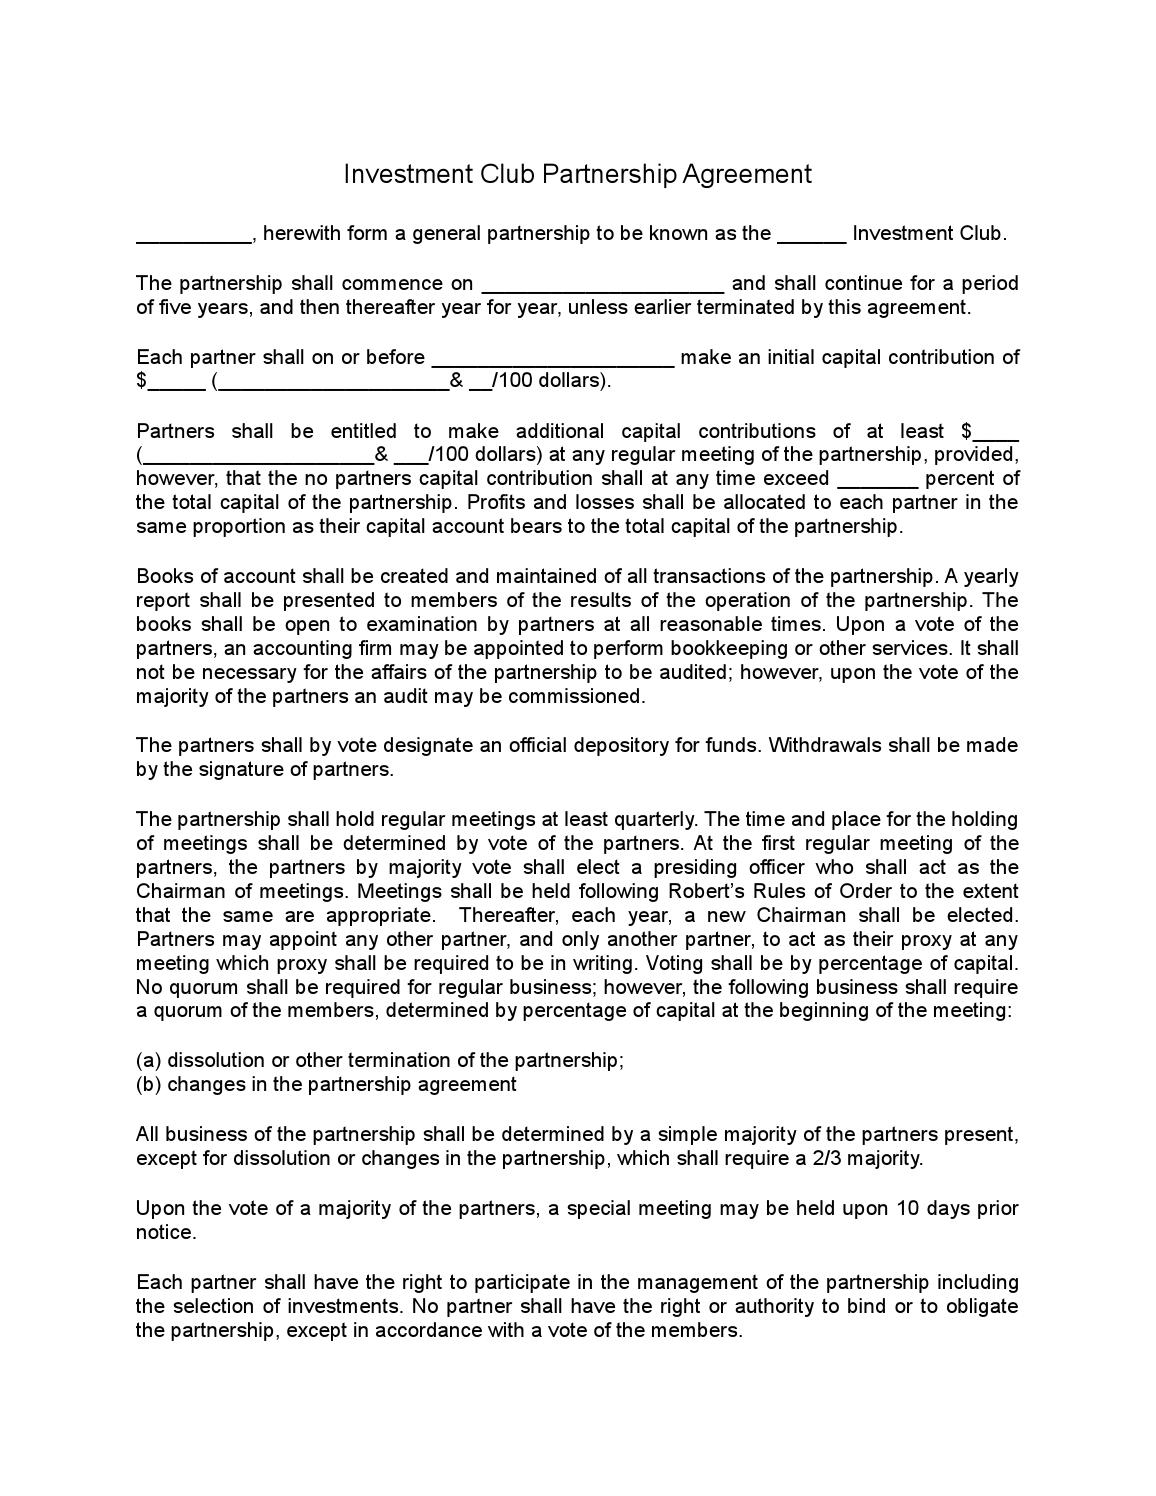 The contract also states that no member can sell. Investment Club Partnership Agreement By Sample Legal Forms Issuu